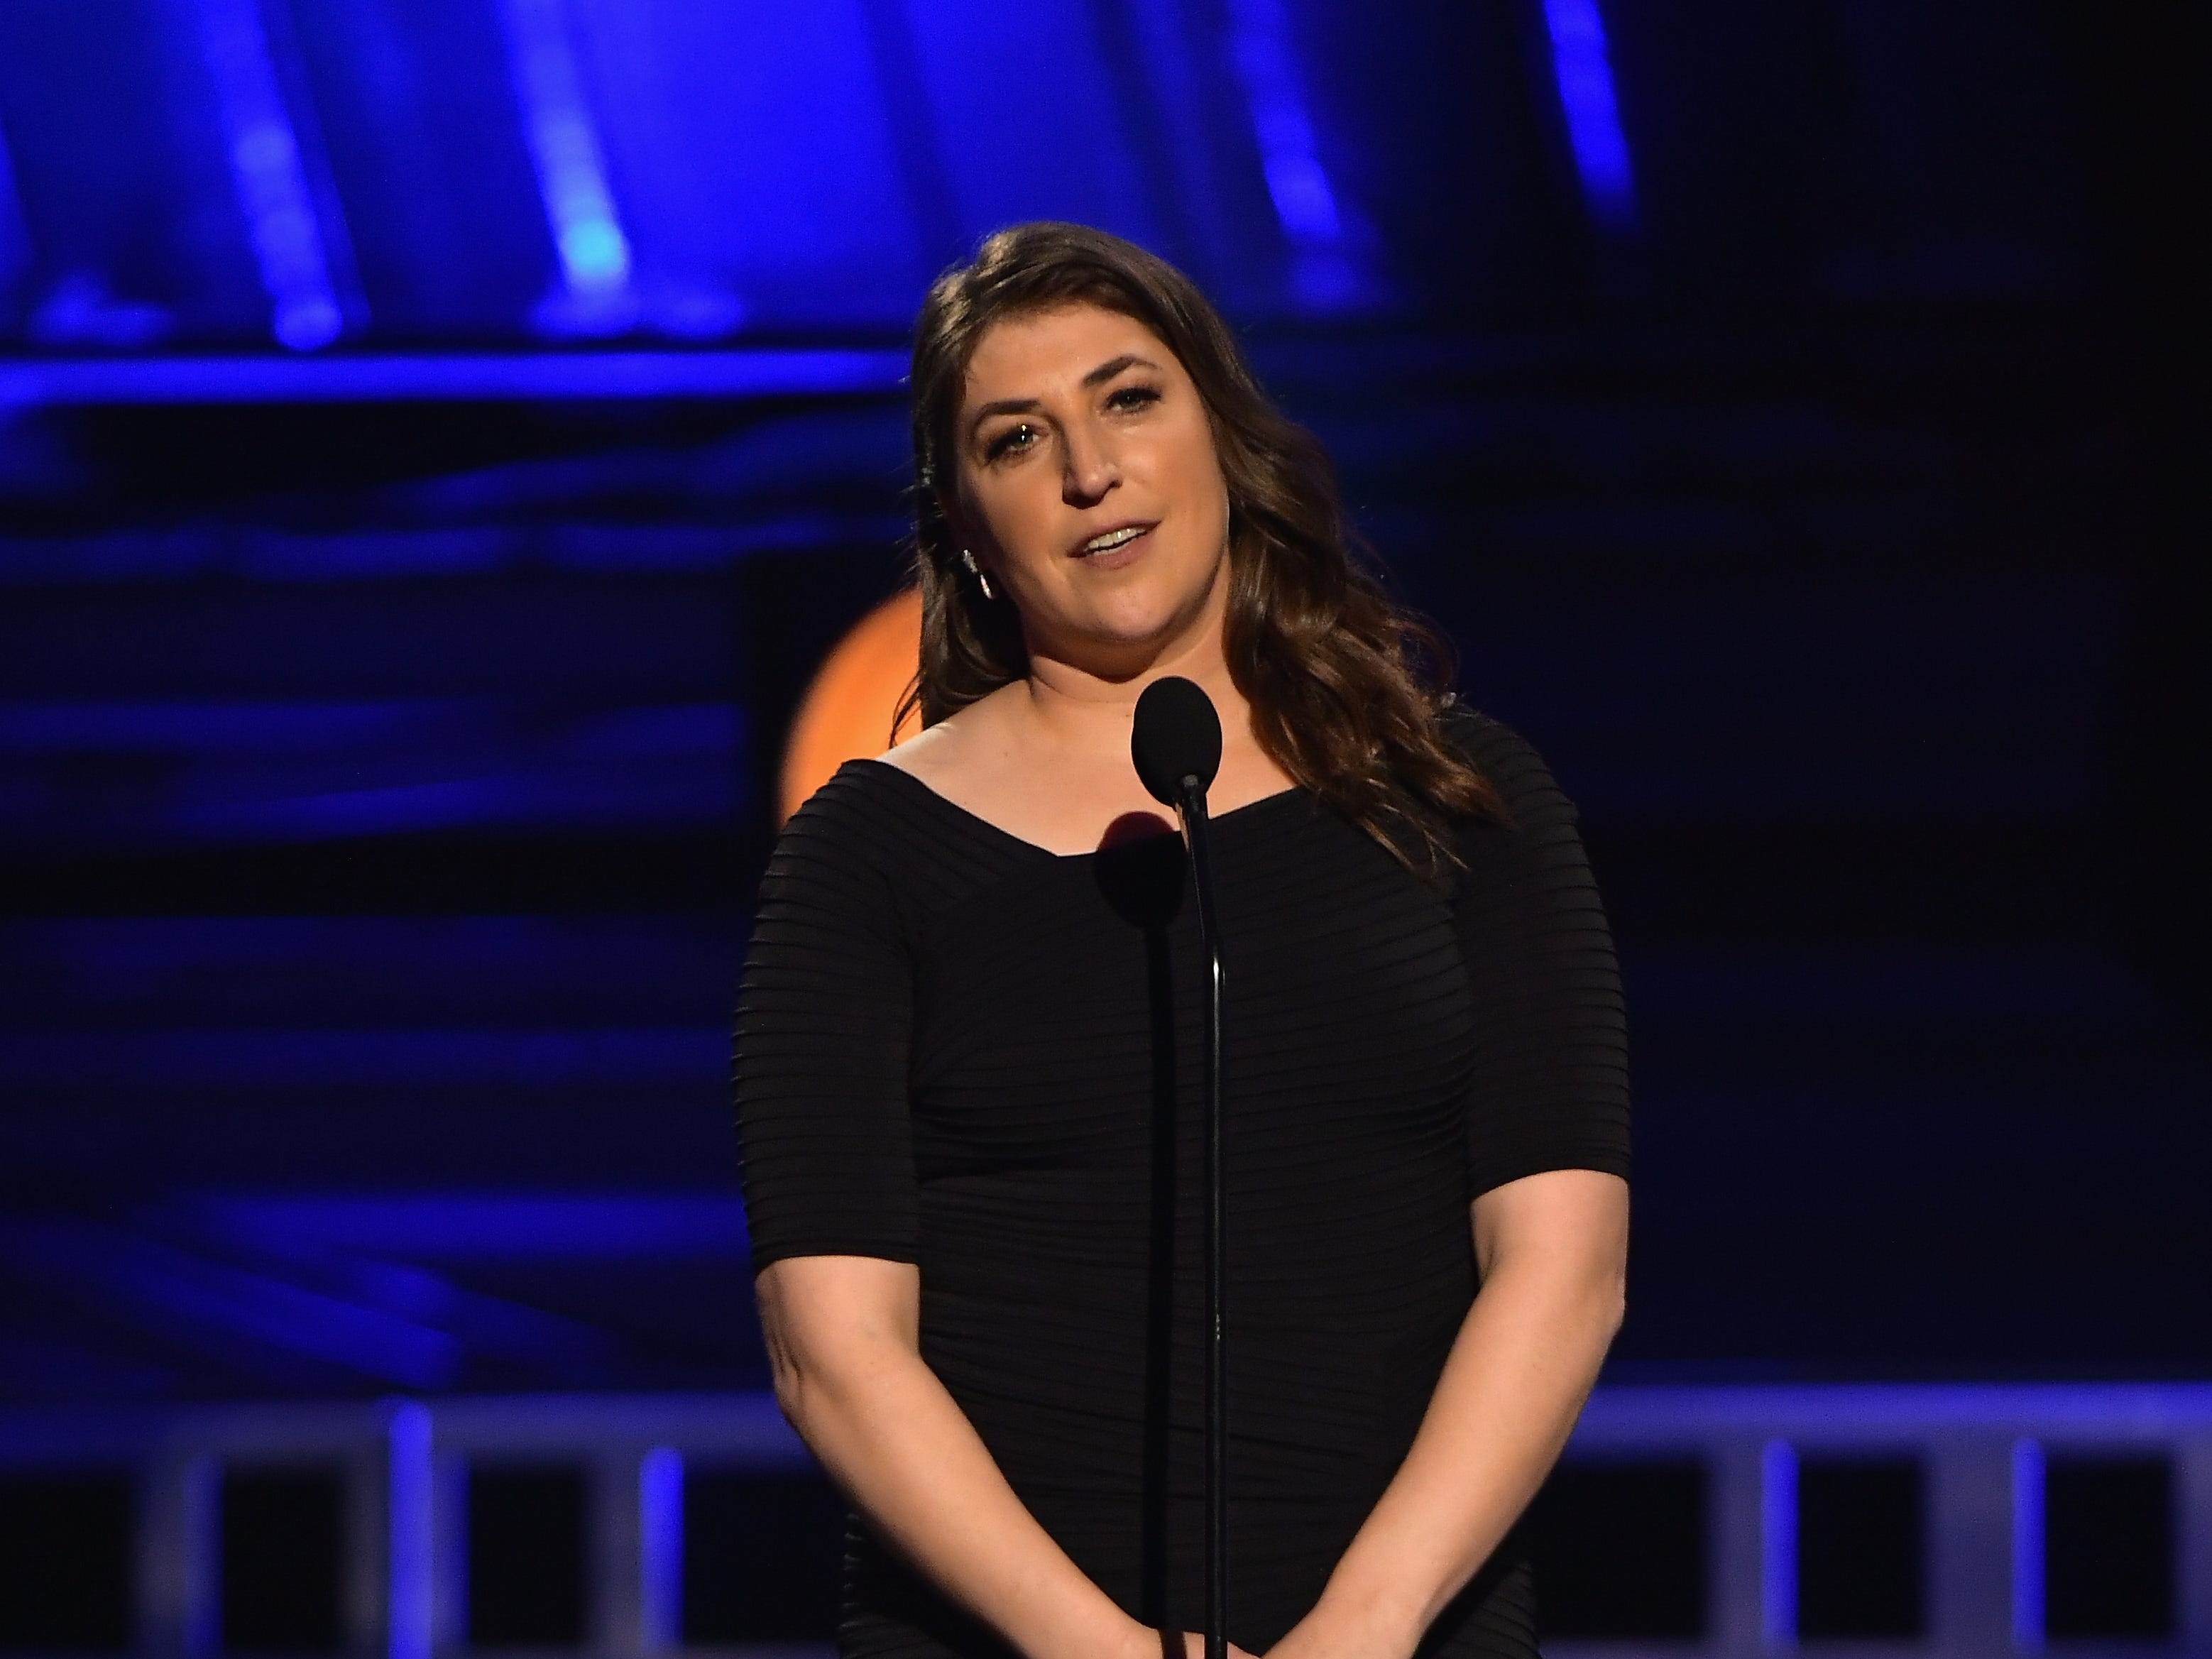 SANTA MONICA, CA - JANUARY 13:  Mayim Bialik speaks onstage during the 24th annual Critics' Choice Awards at Barker Hangar on January 13, 2019 in Santa Monica, California.  (Photo by Matt Winkelmeyer/Getty Images) ORG XMIT: 775260338 ORIG FILE ID: 1082126536